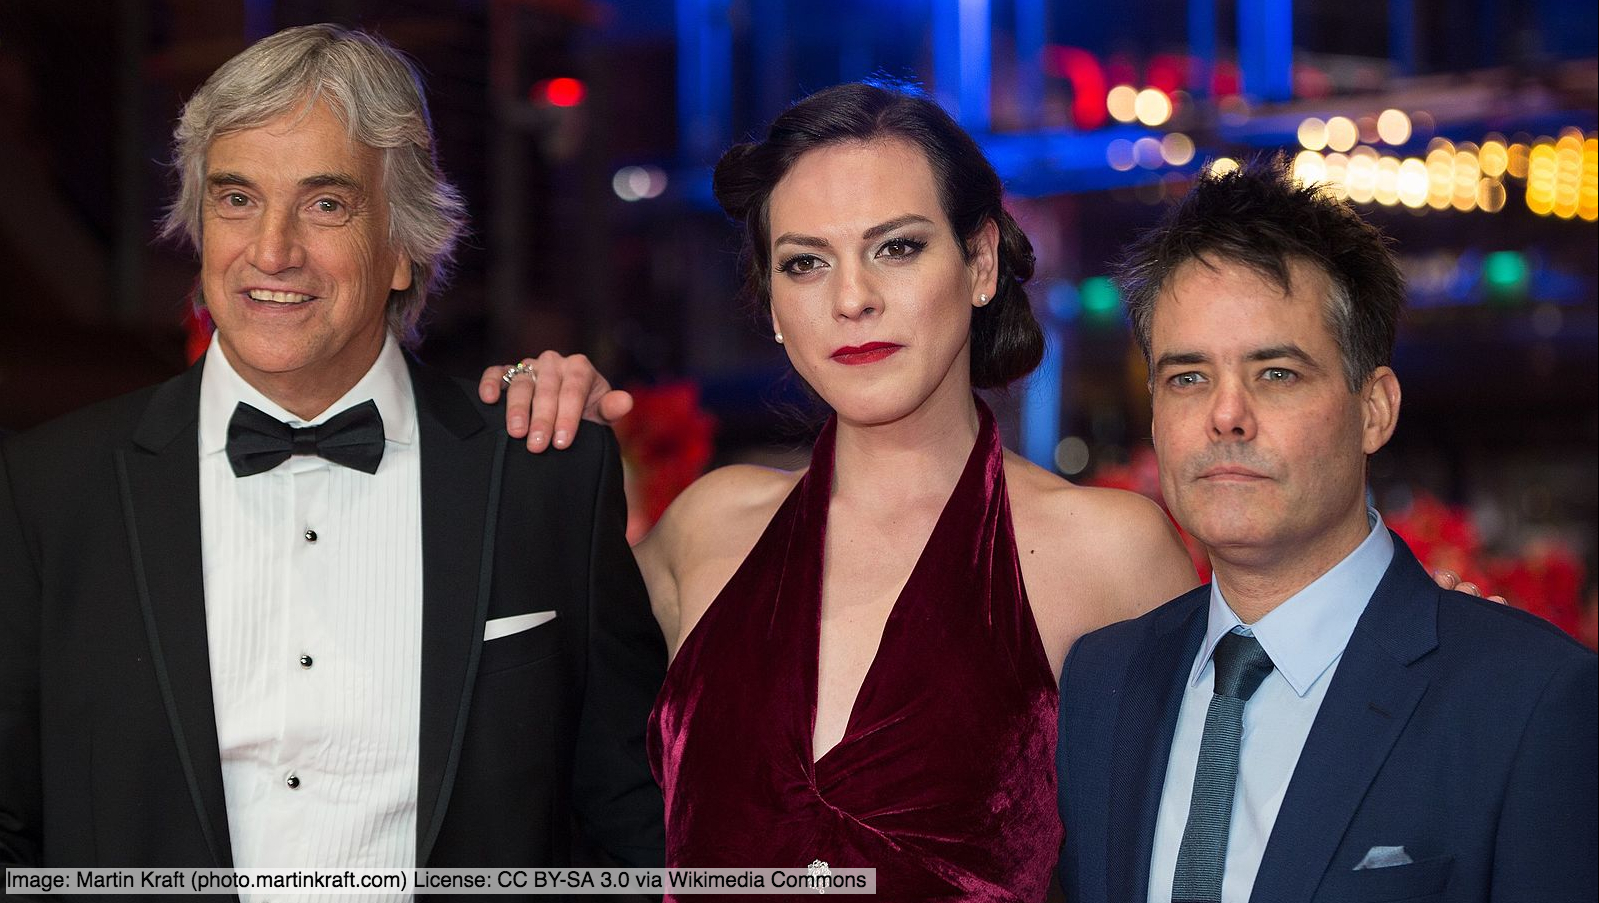 Daniela Vega, Francisco Reyes and Sebastián Lelio (Image: Martin Kraft (photo.martinkraft.com) License: CC BY-SA 3.0 via Wikimedia Commons)